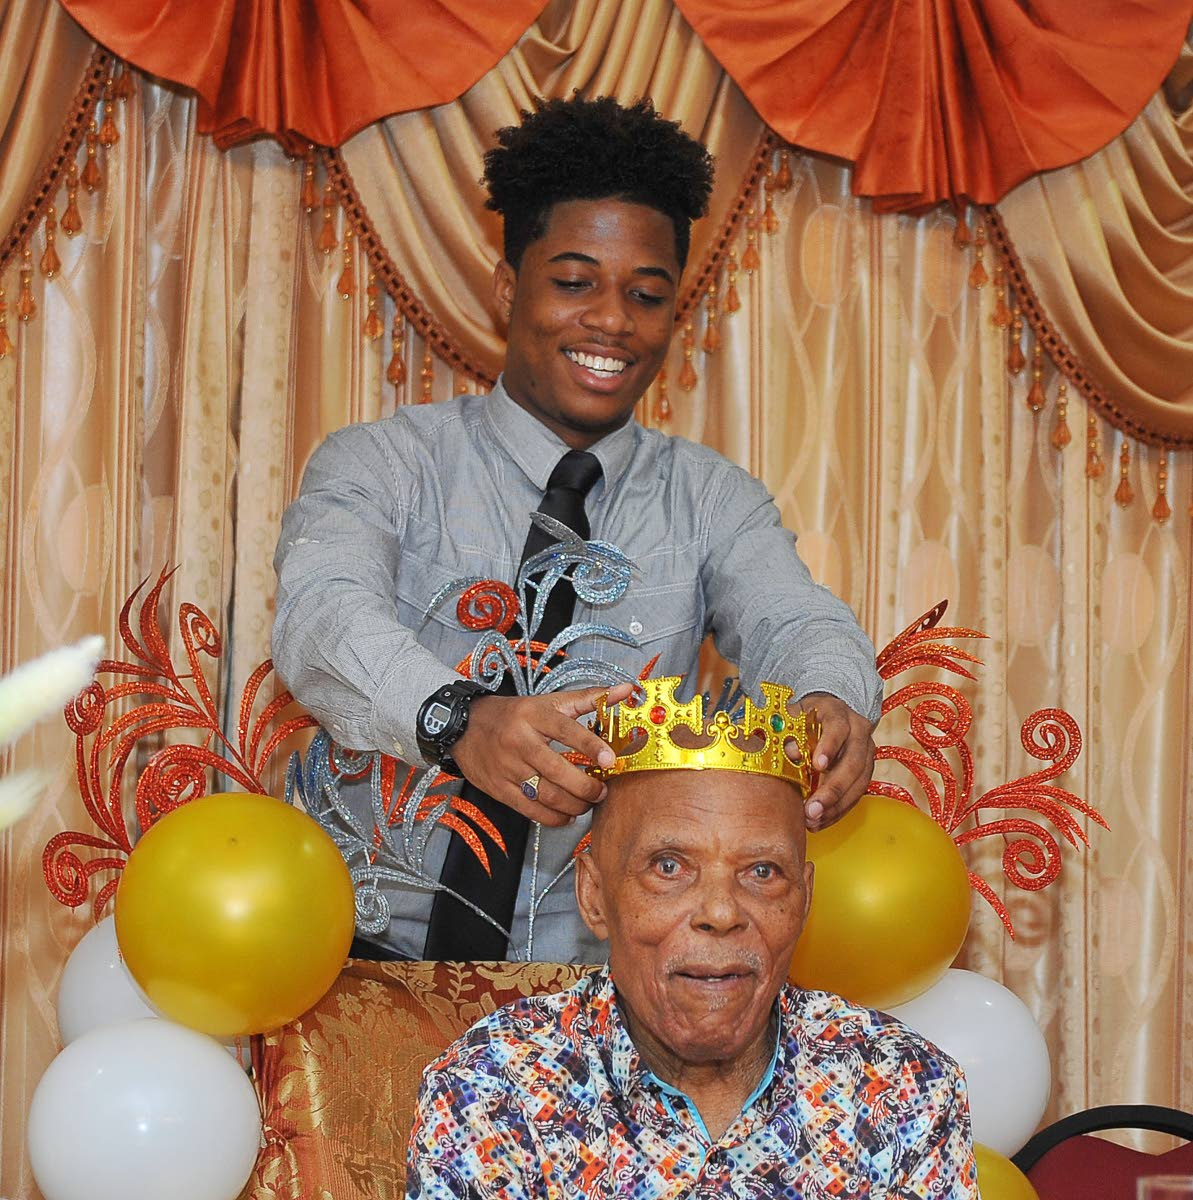 Justin McLeod places a crown on his grandfather Stephenson Callender.